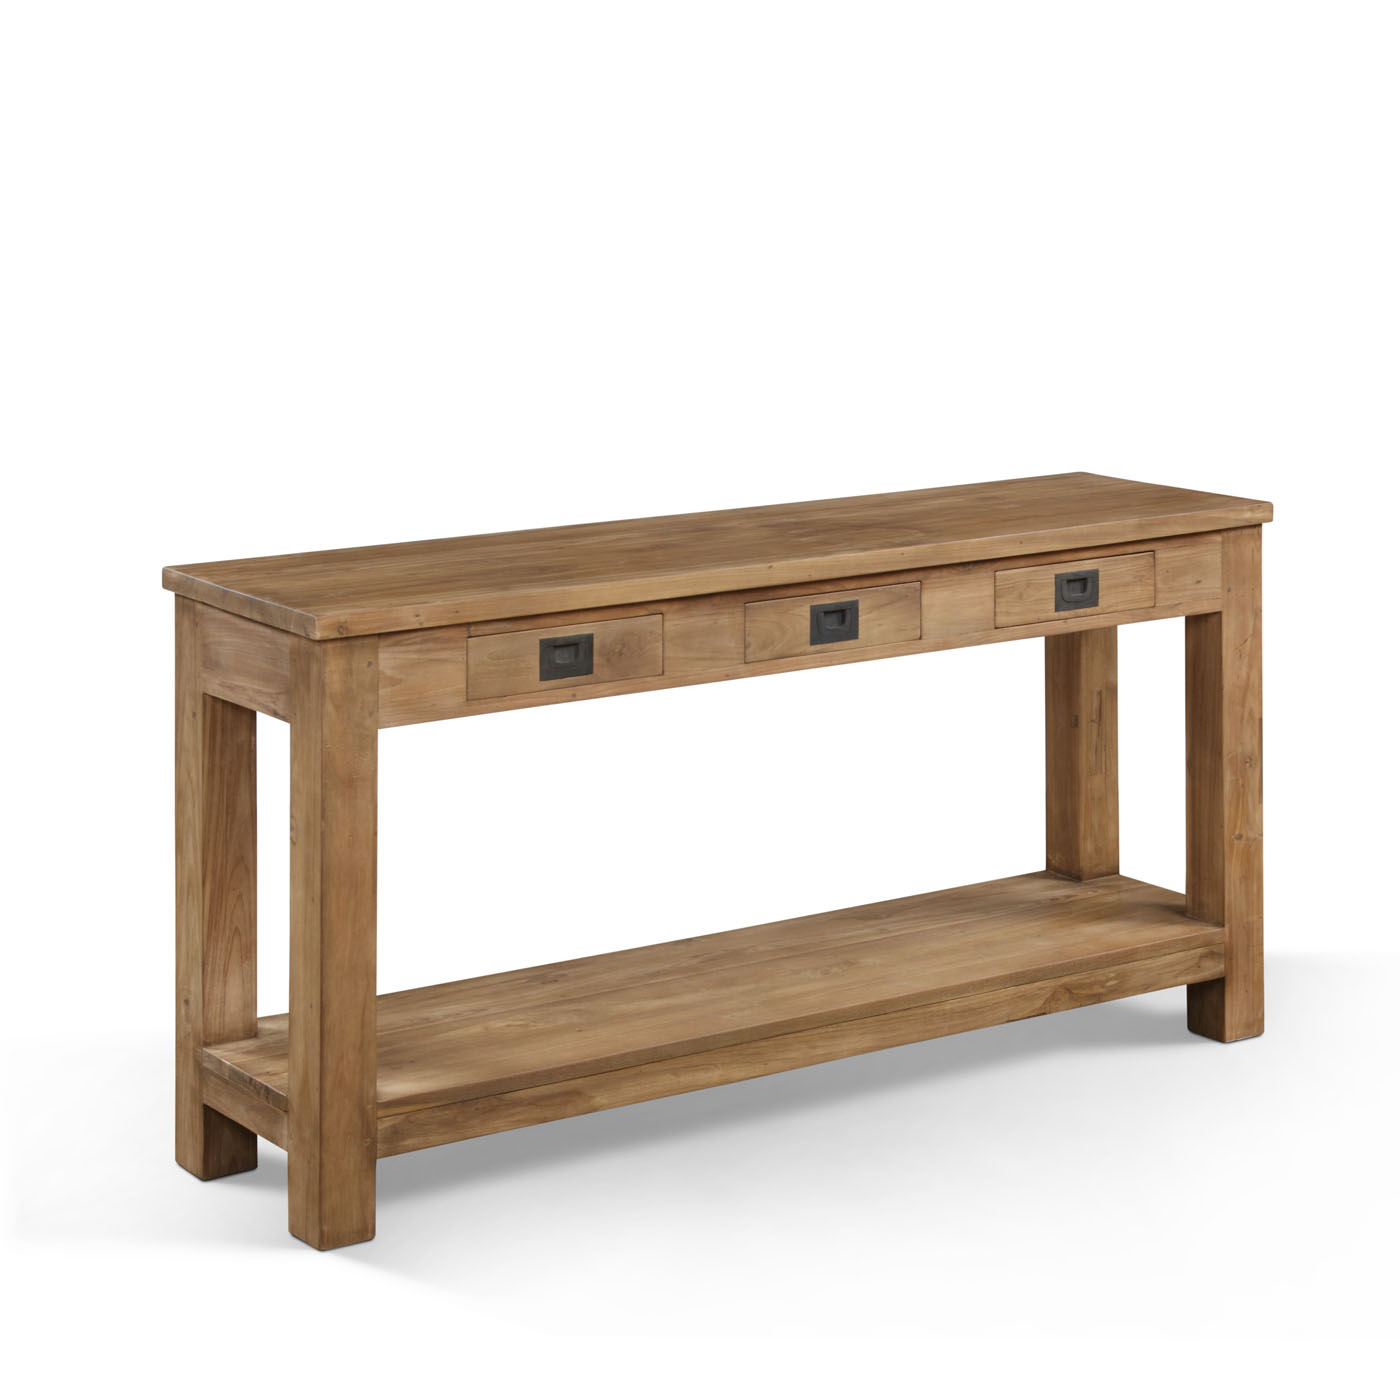 Echelon Narrow Console Table Reviews Crate And Barrel Demilune For Well Known Echelon Console Tables (View 17 of 20)